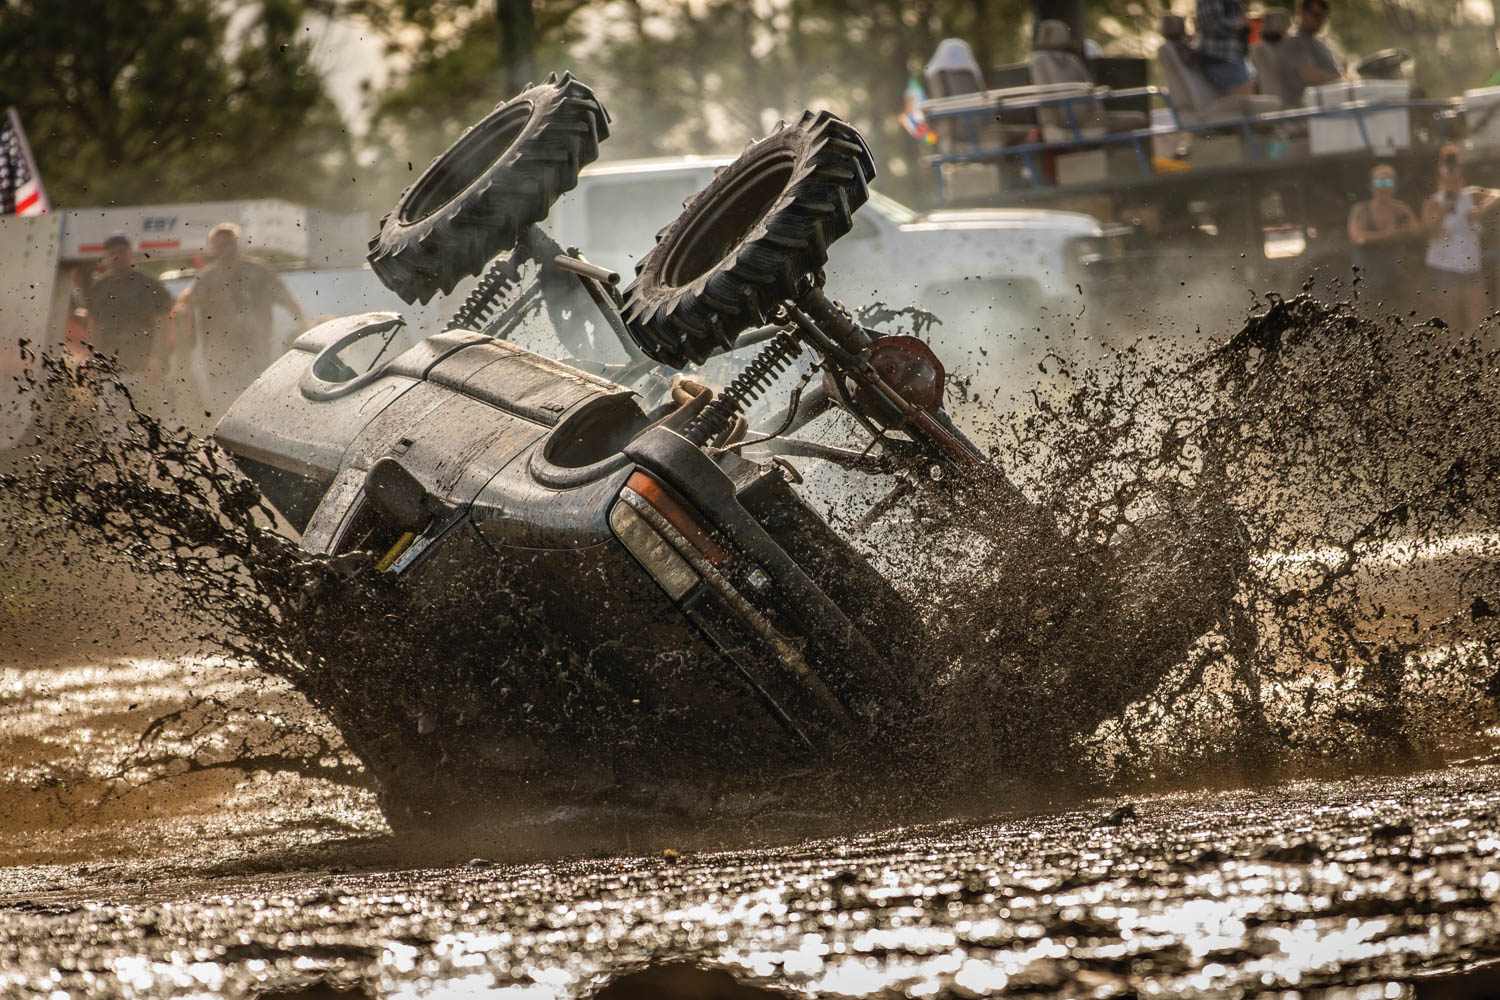 Wrecking is racing. A mud racer catches a rut and topples over in the slurry.